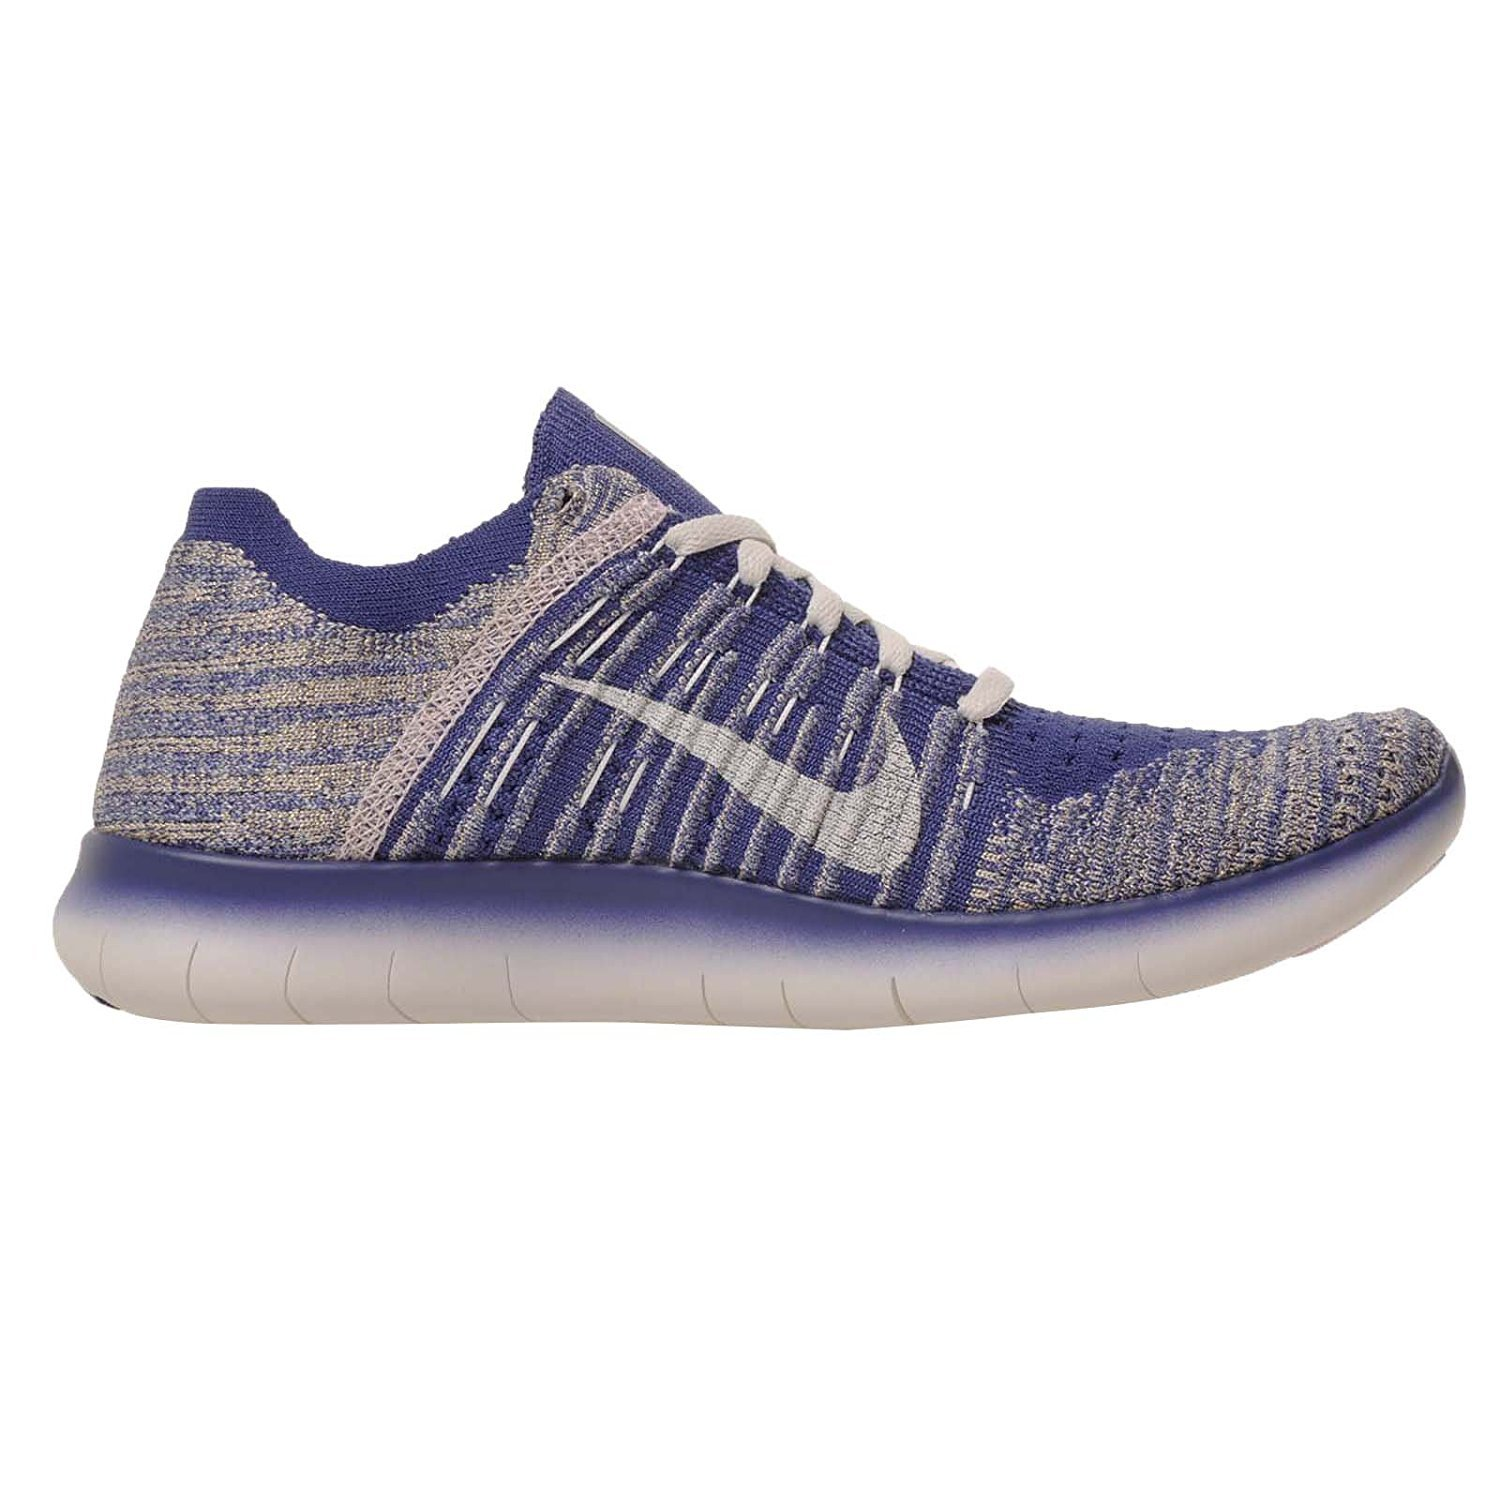 7eefb9930dc9 Amazon.com  Nike Kid s Free RN Flyknit GS Running Shoes  Sports   Outdoors